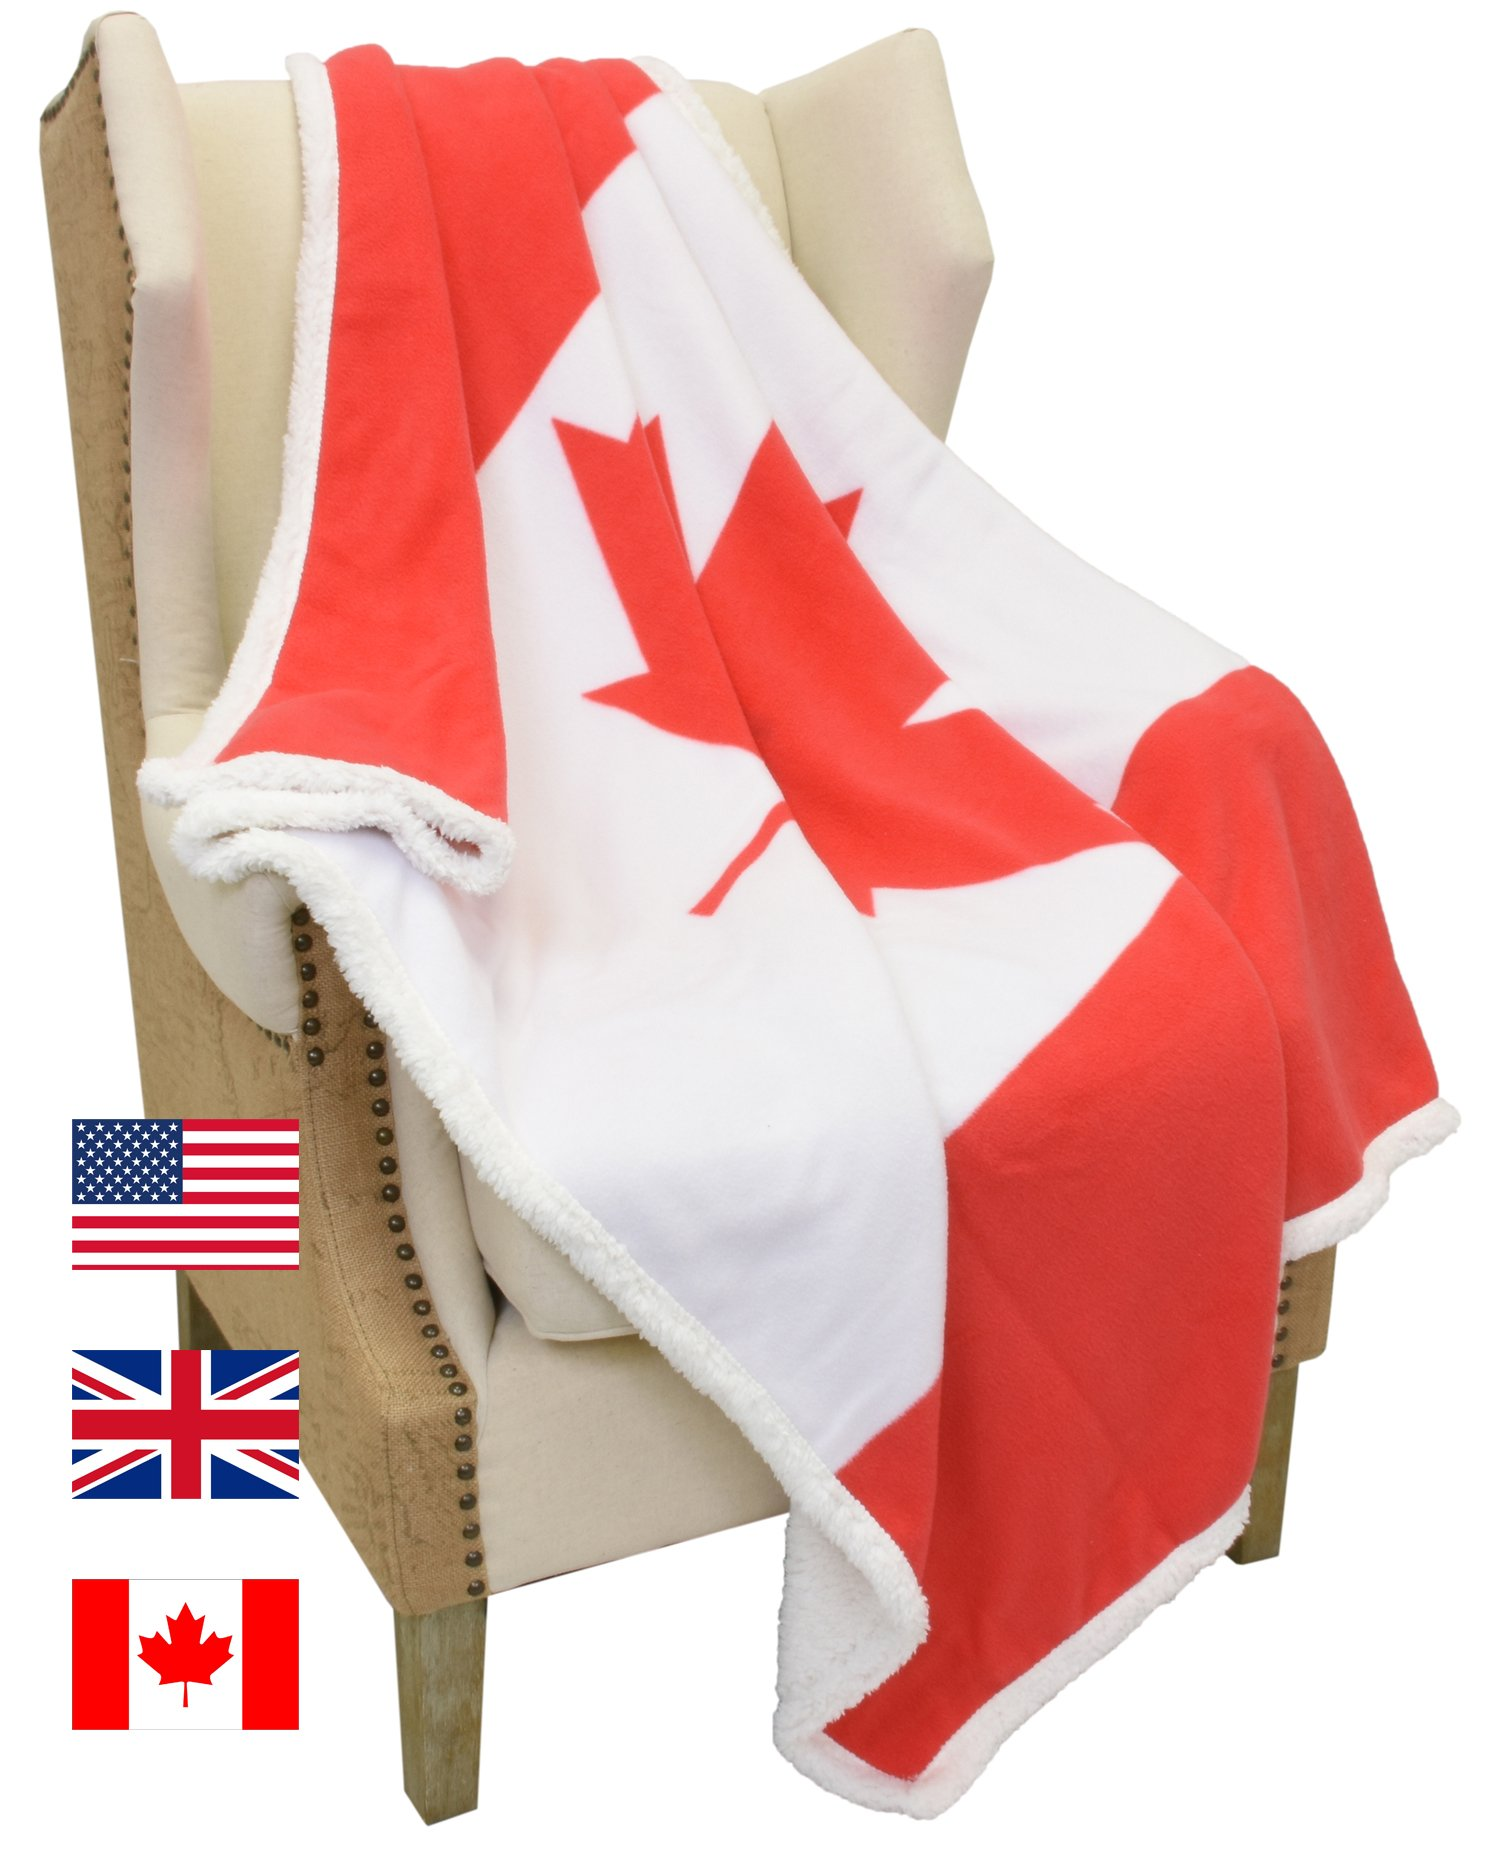 Sherpa Plush Blanket,Canada National Flag Maple Leaf Print Patriotic Plush Super Soft Warm Reversible FleeceThrows for Couch Bed by Catalonia 60''x 50''